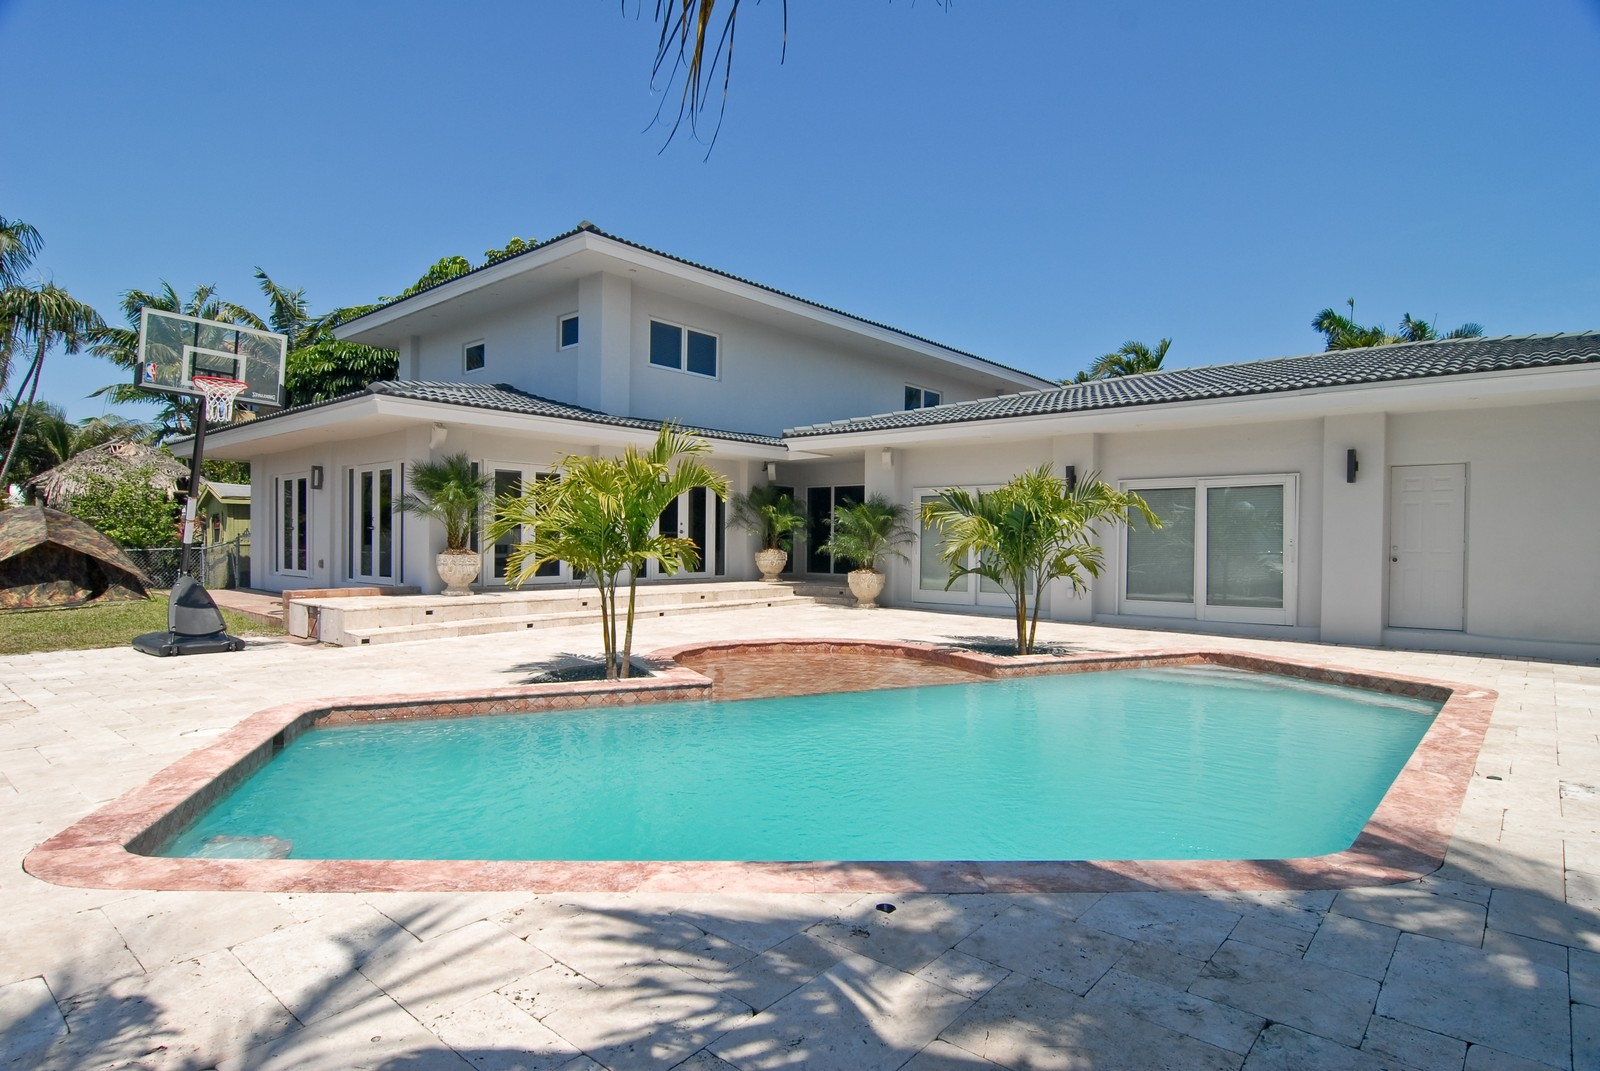 Real Estate Photography - 6842 Sunrise Ter, Coral Gables, FL, 33133 - Pool